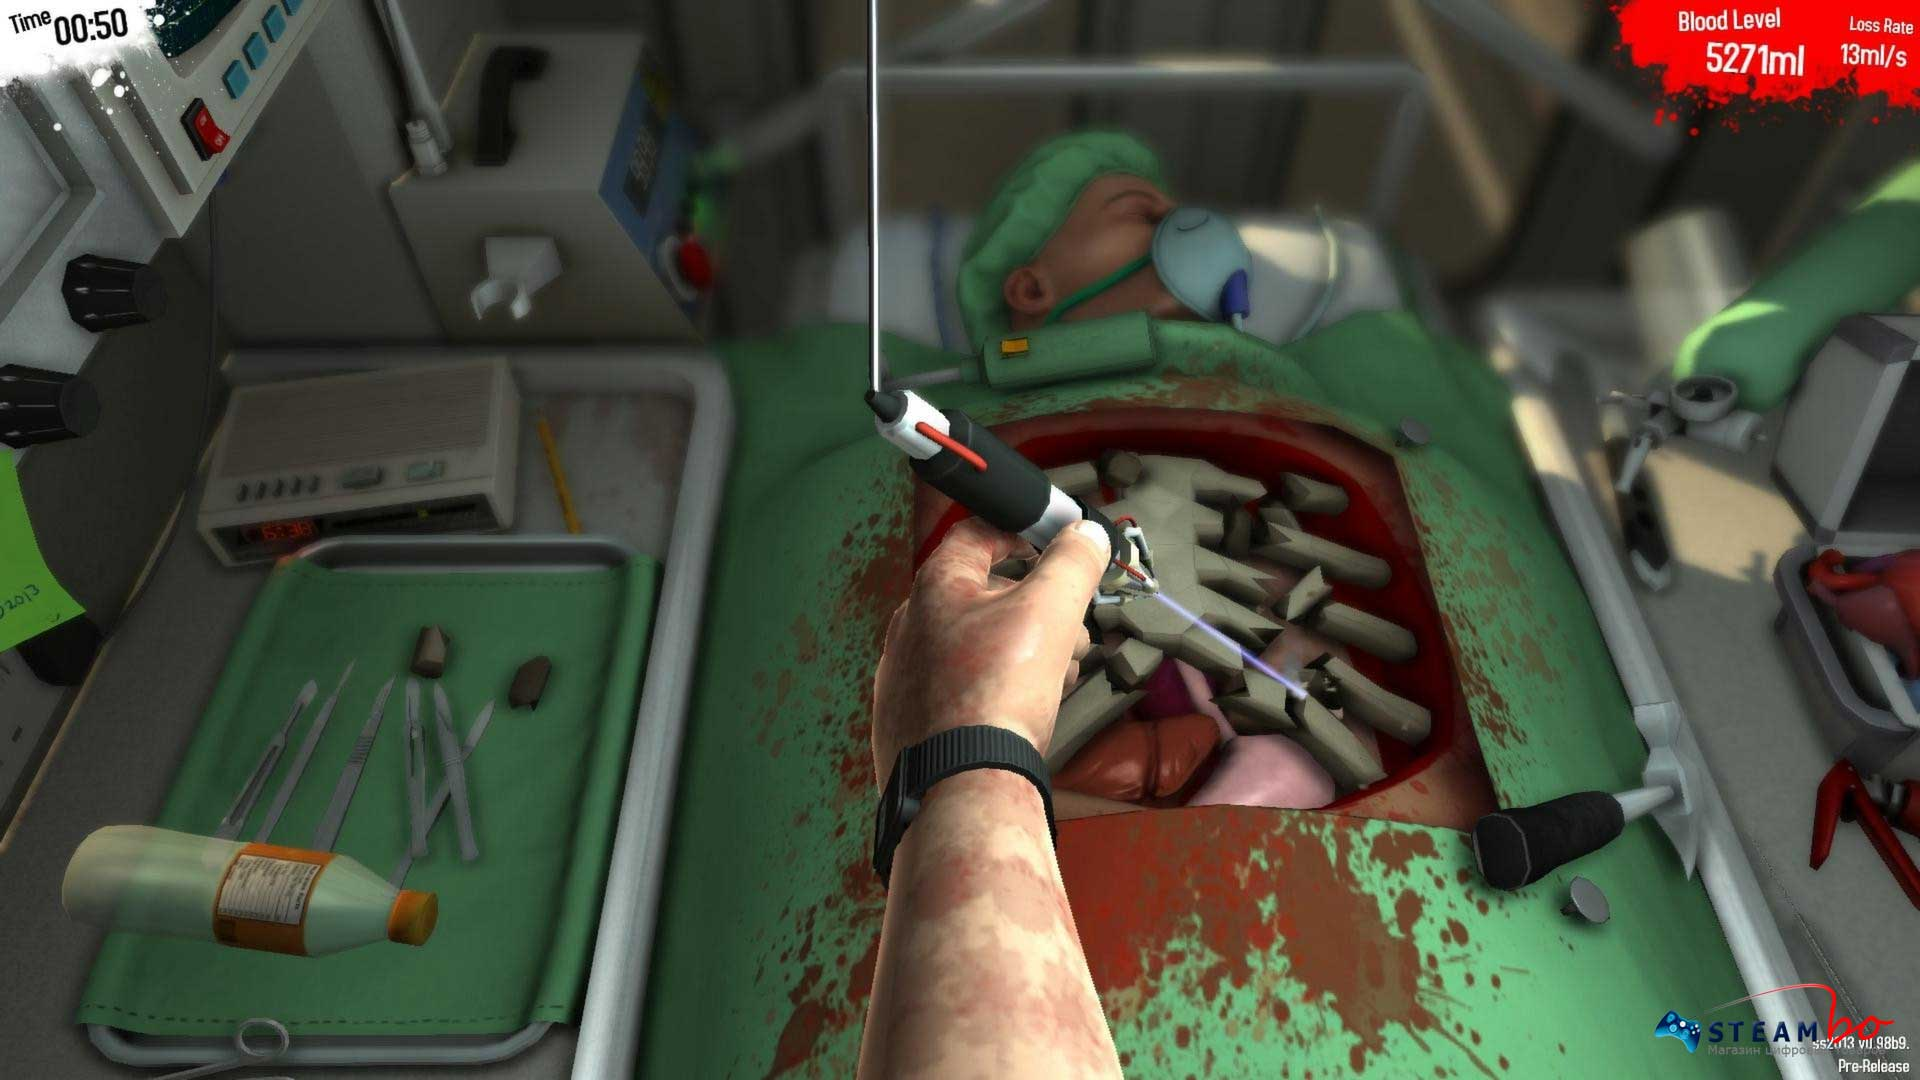 Surgeon Simulator 2013 Region Free (Steam Gift/Key)